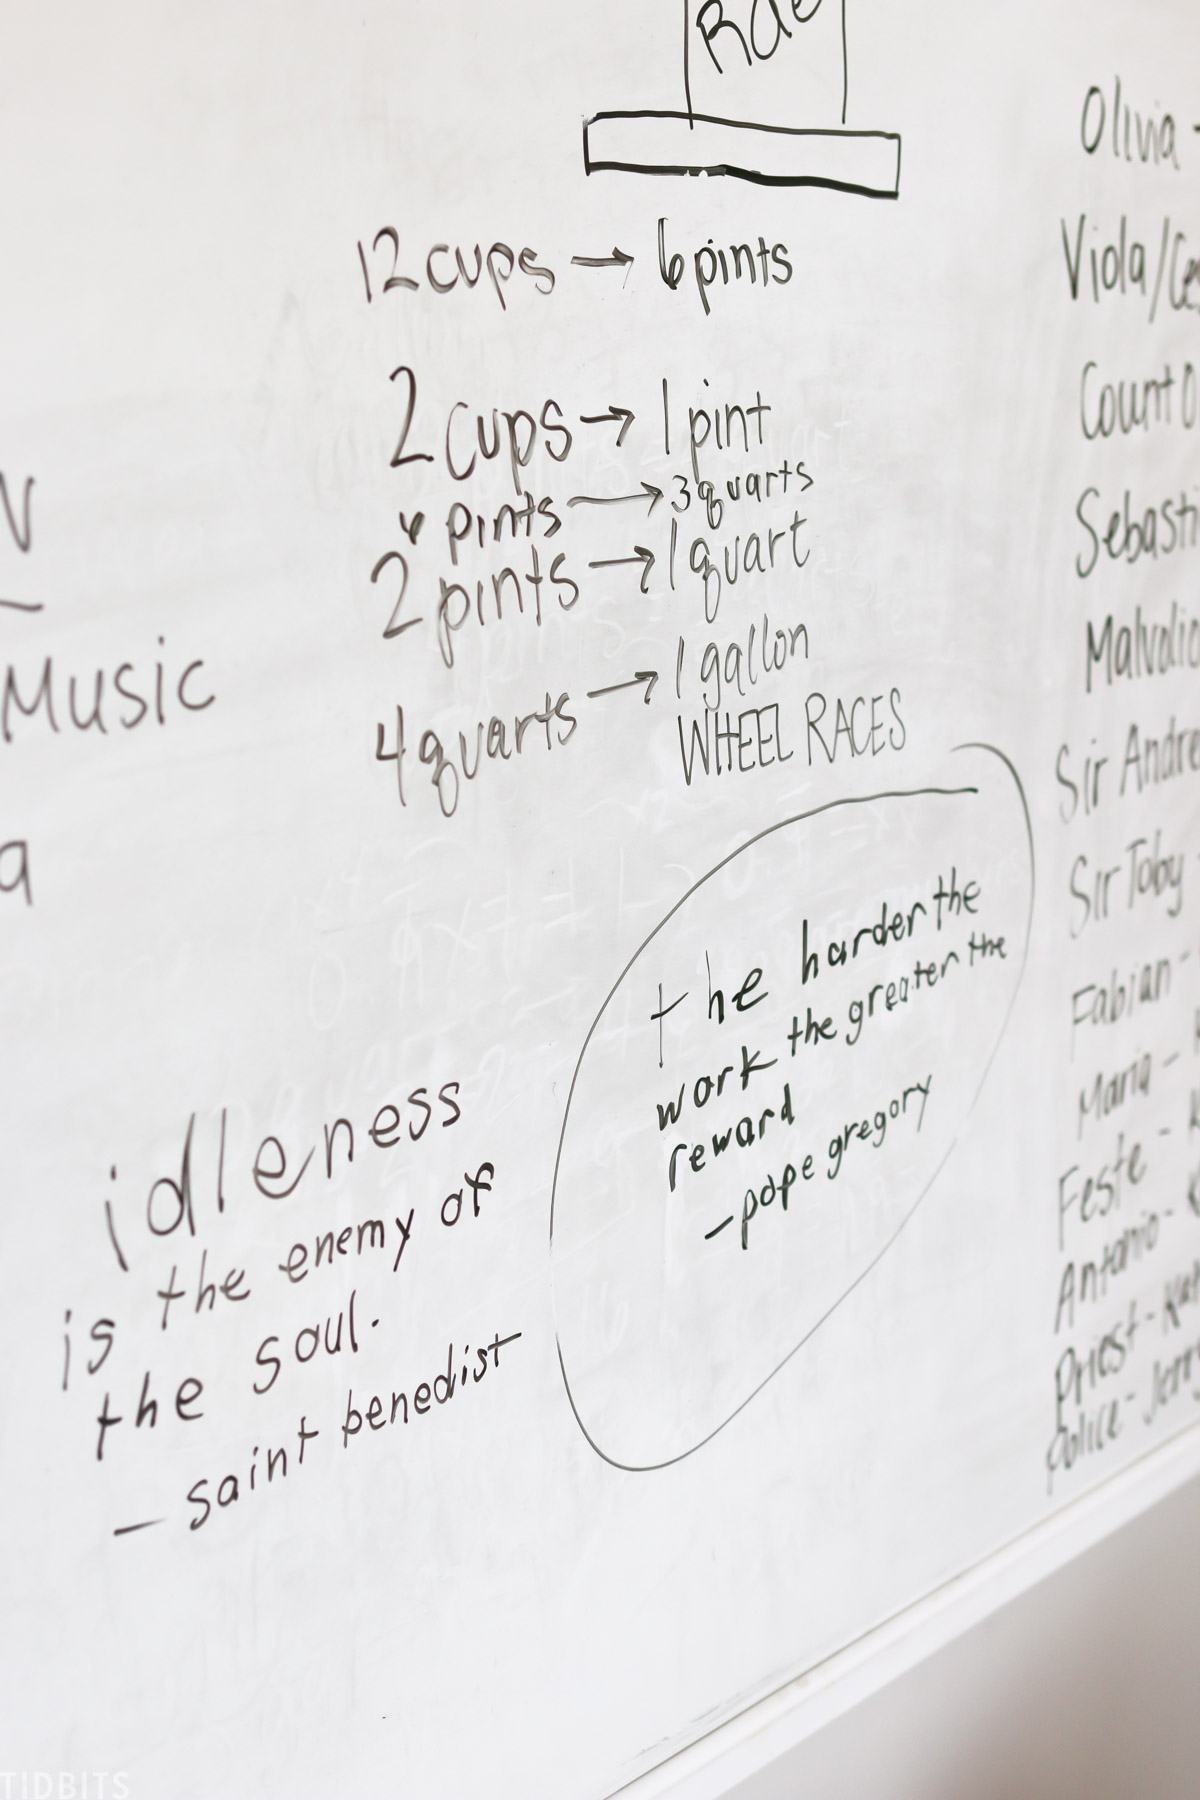 whiteboard with notes for various measuring units like cups, pints, and quarts